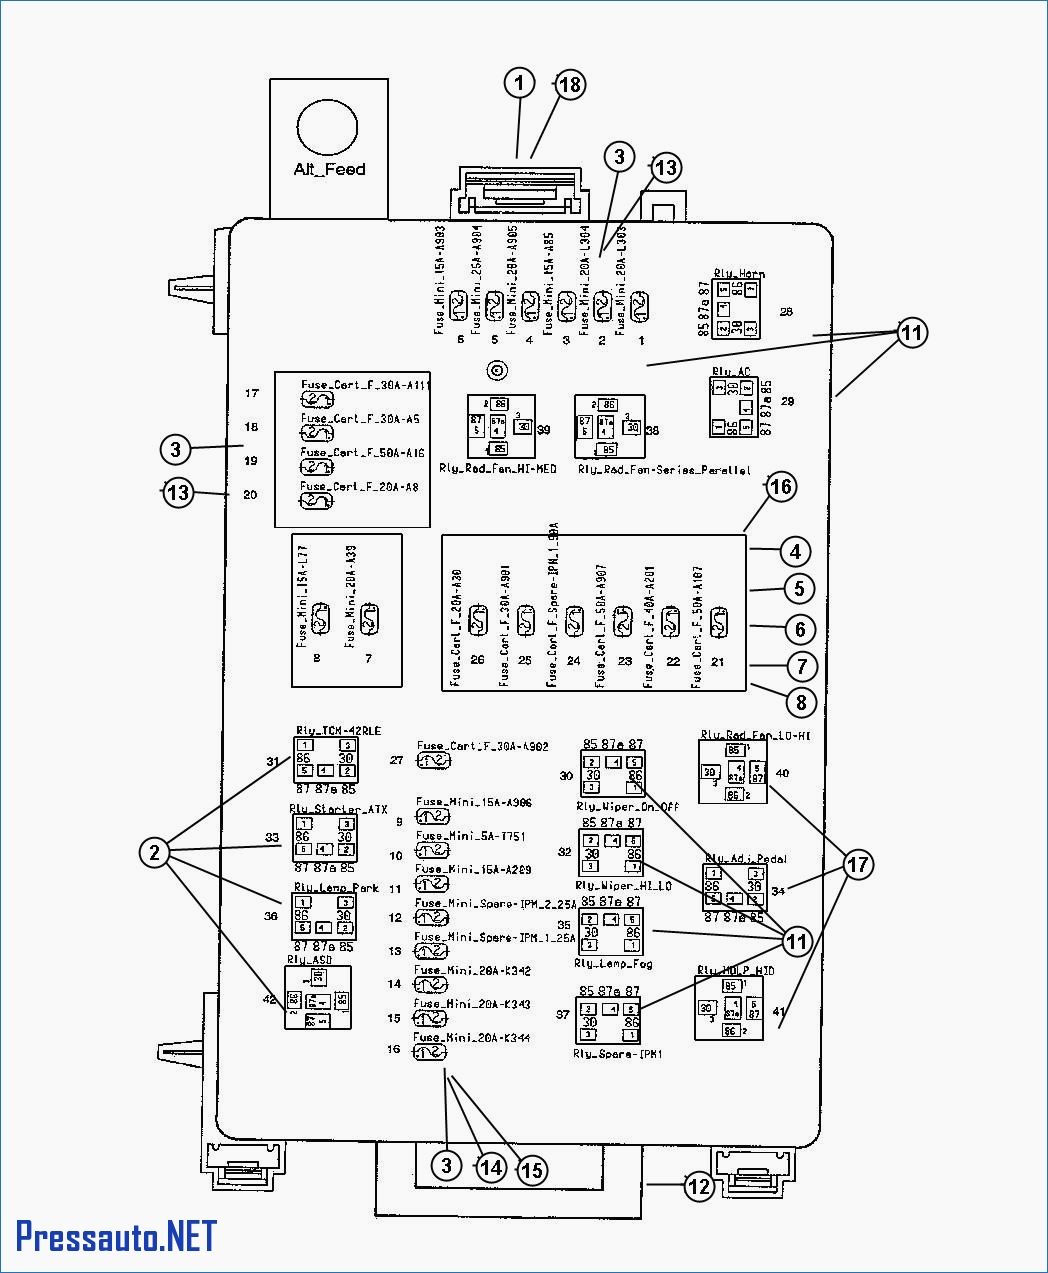 1969 dodge dart fuse box light fixture wiring diagrams